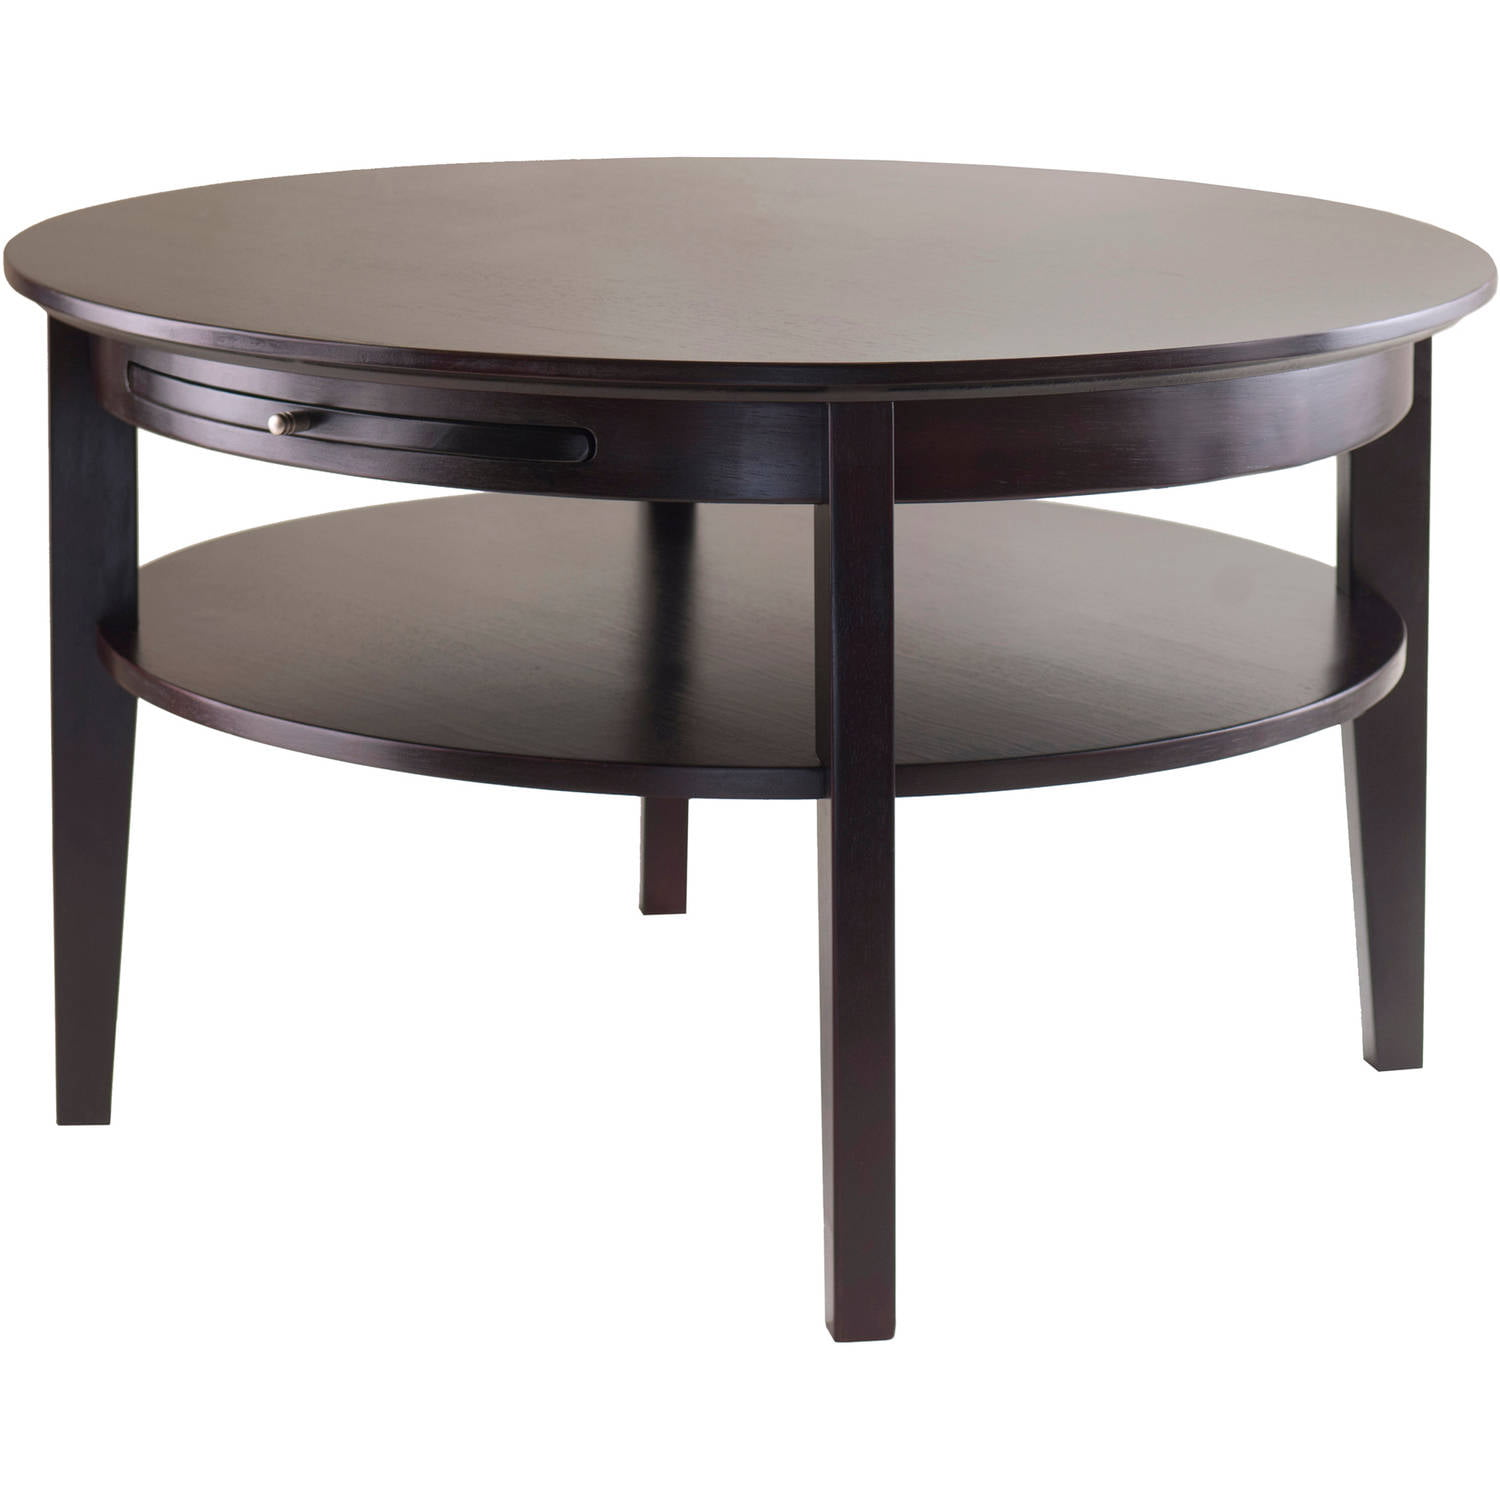 Winsome Wood Amelia Round Coffee Table With Pull Out Tray Espresso Finish Com